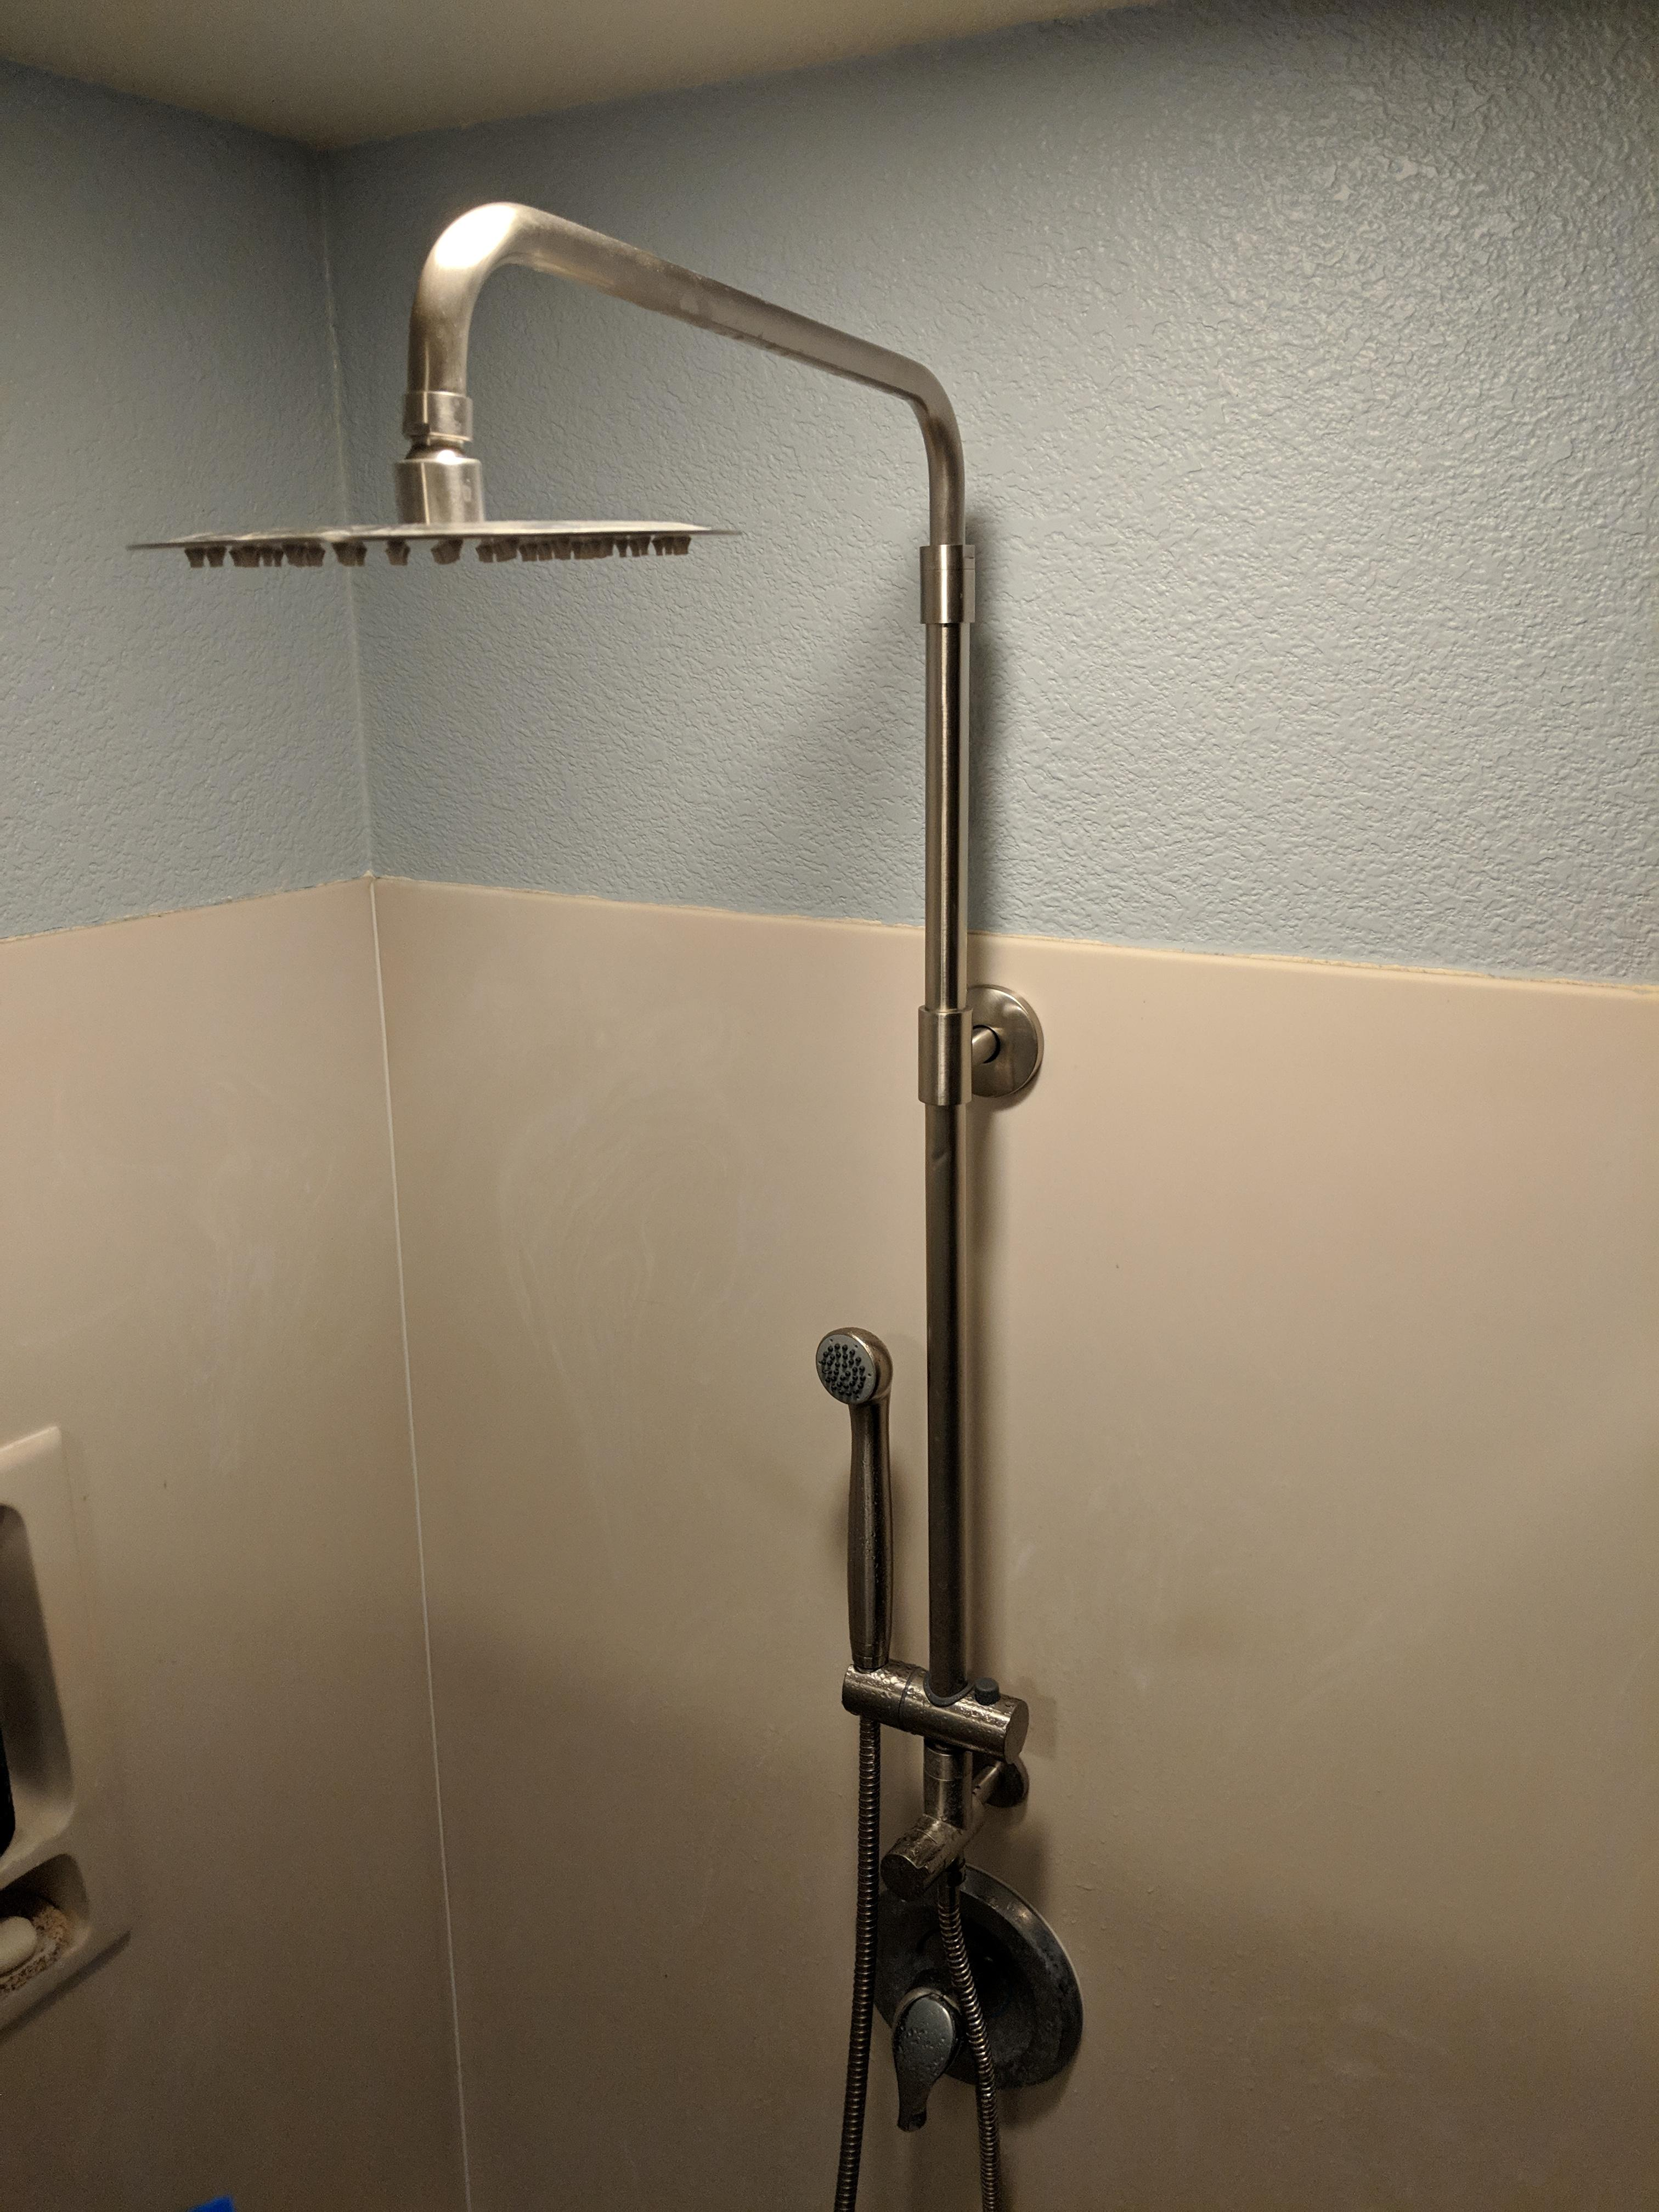 Shower Assembly With Adjustable Height Tall